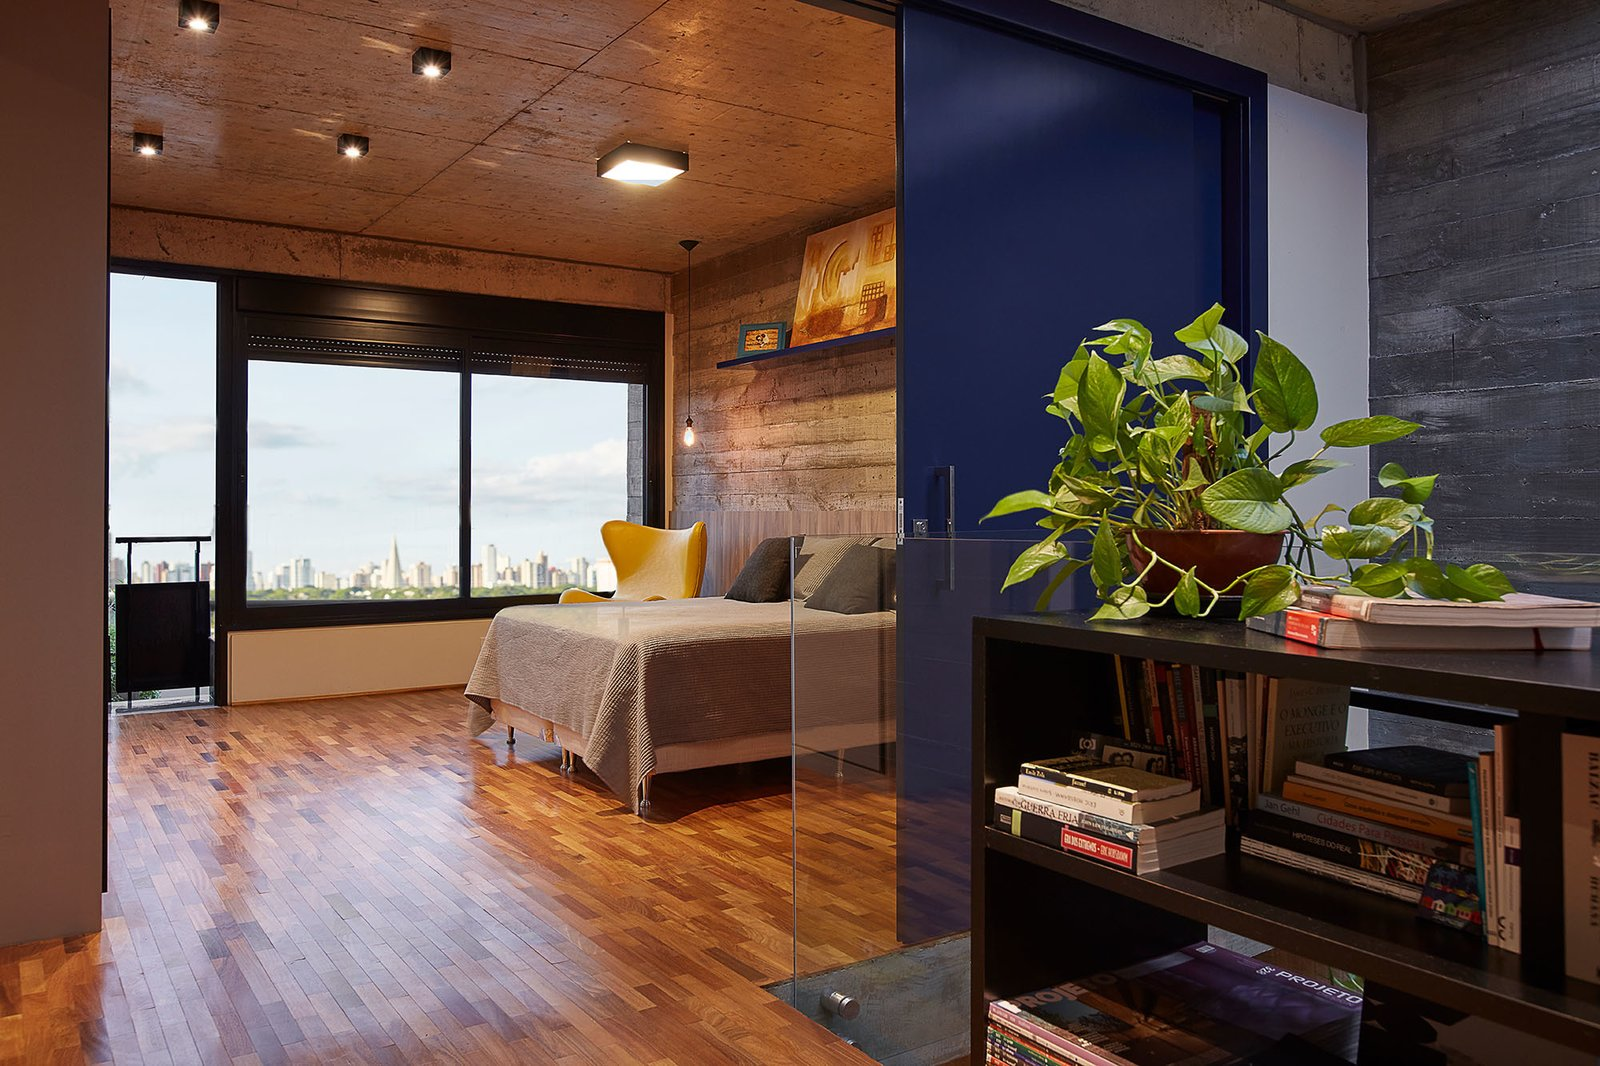 The master bedroom looks out to city views.